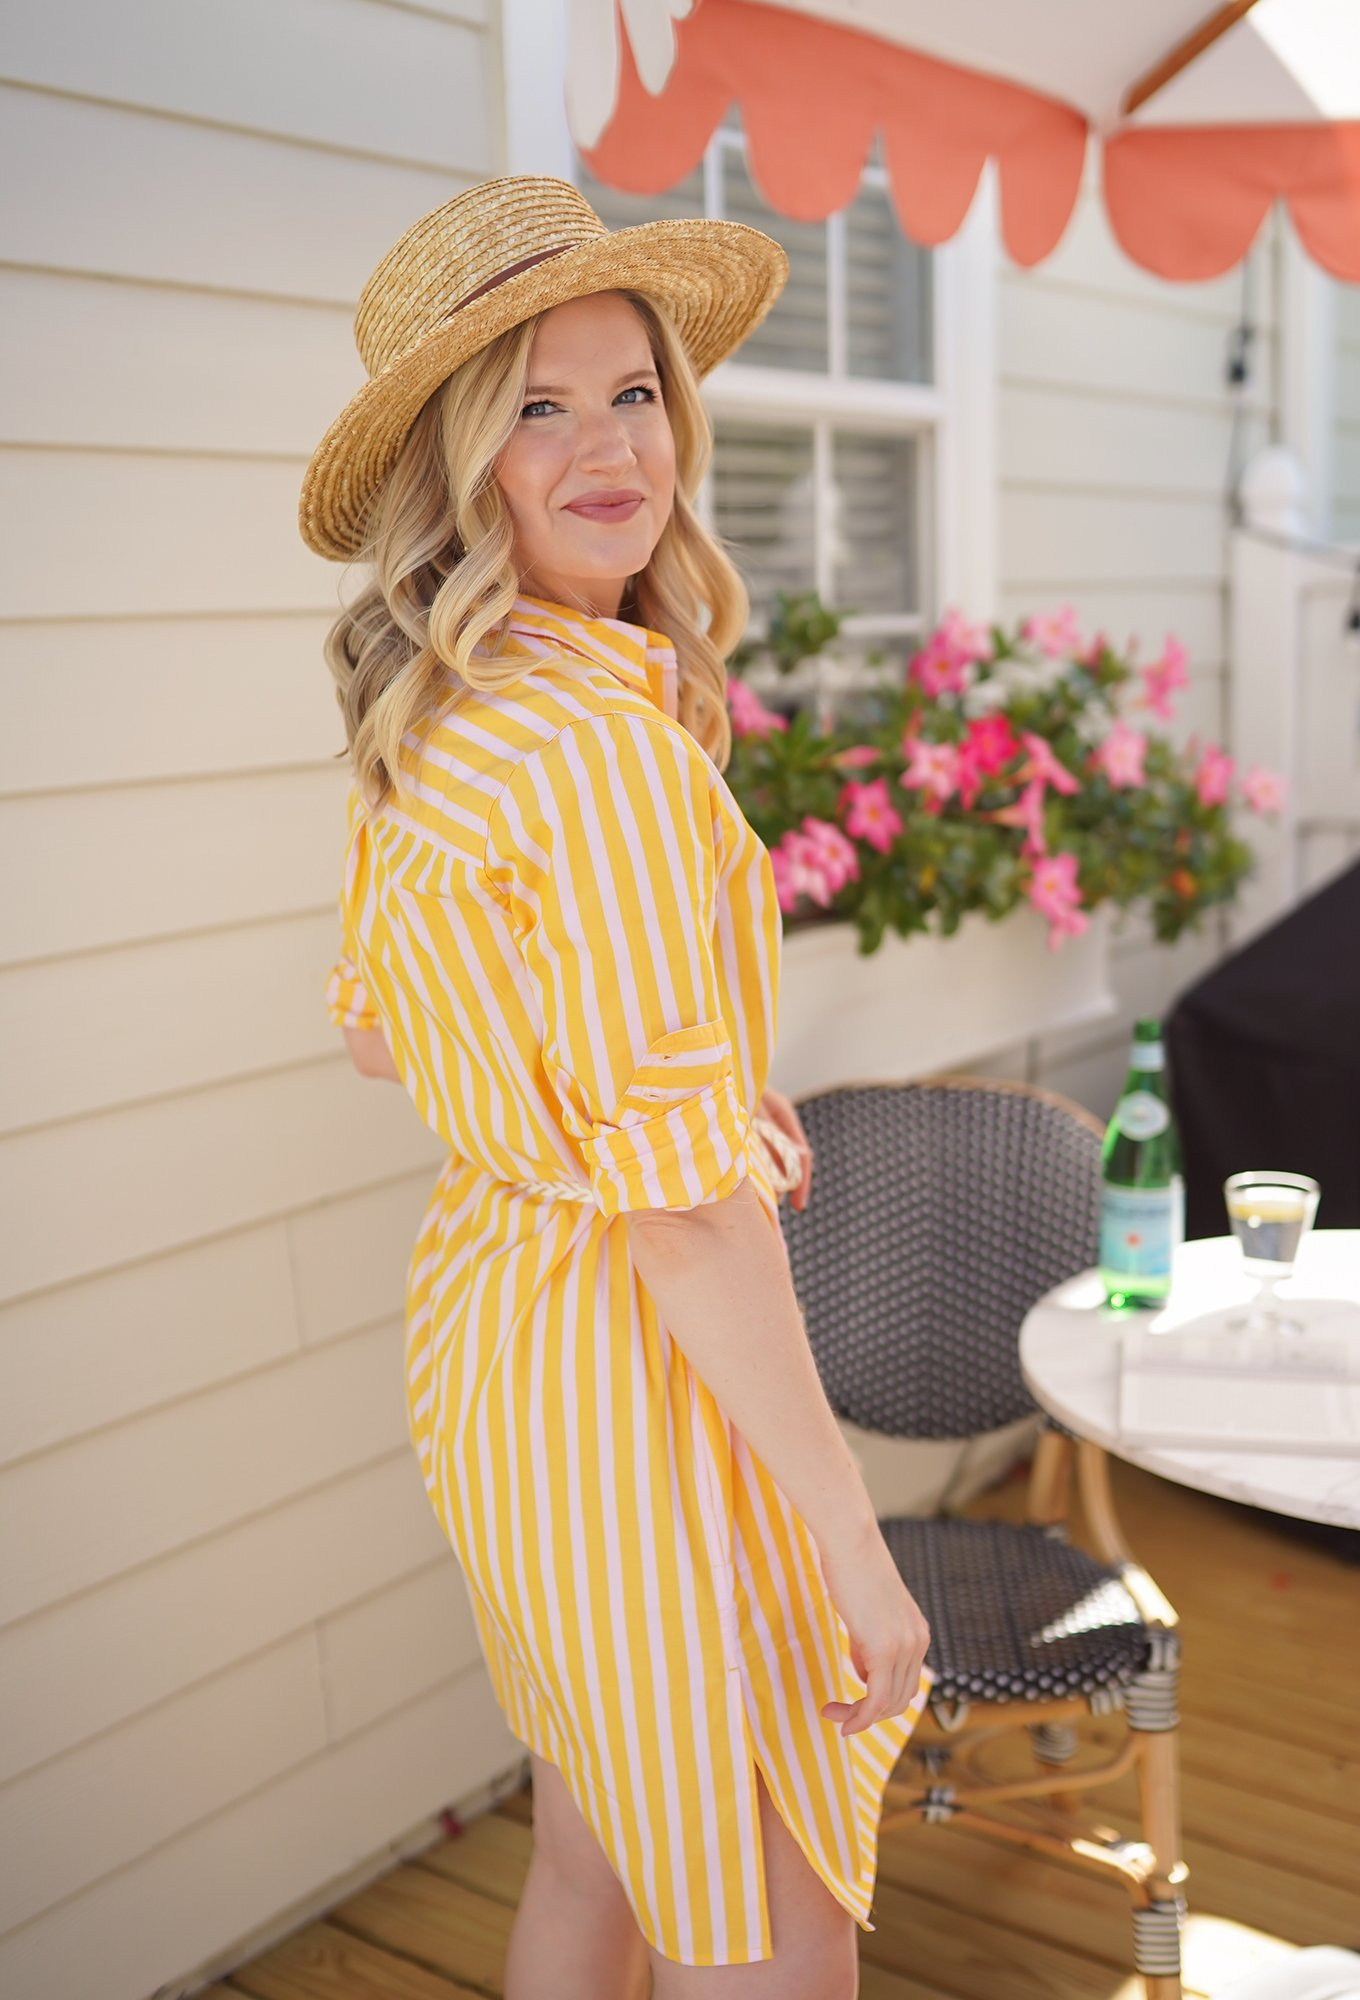 Ashley Brooke wearing a yellow striped dress from J Crew